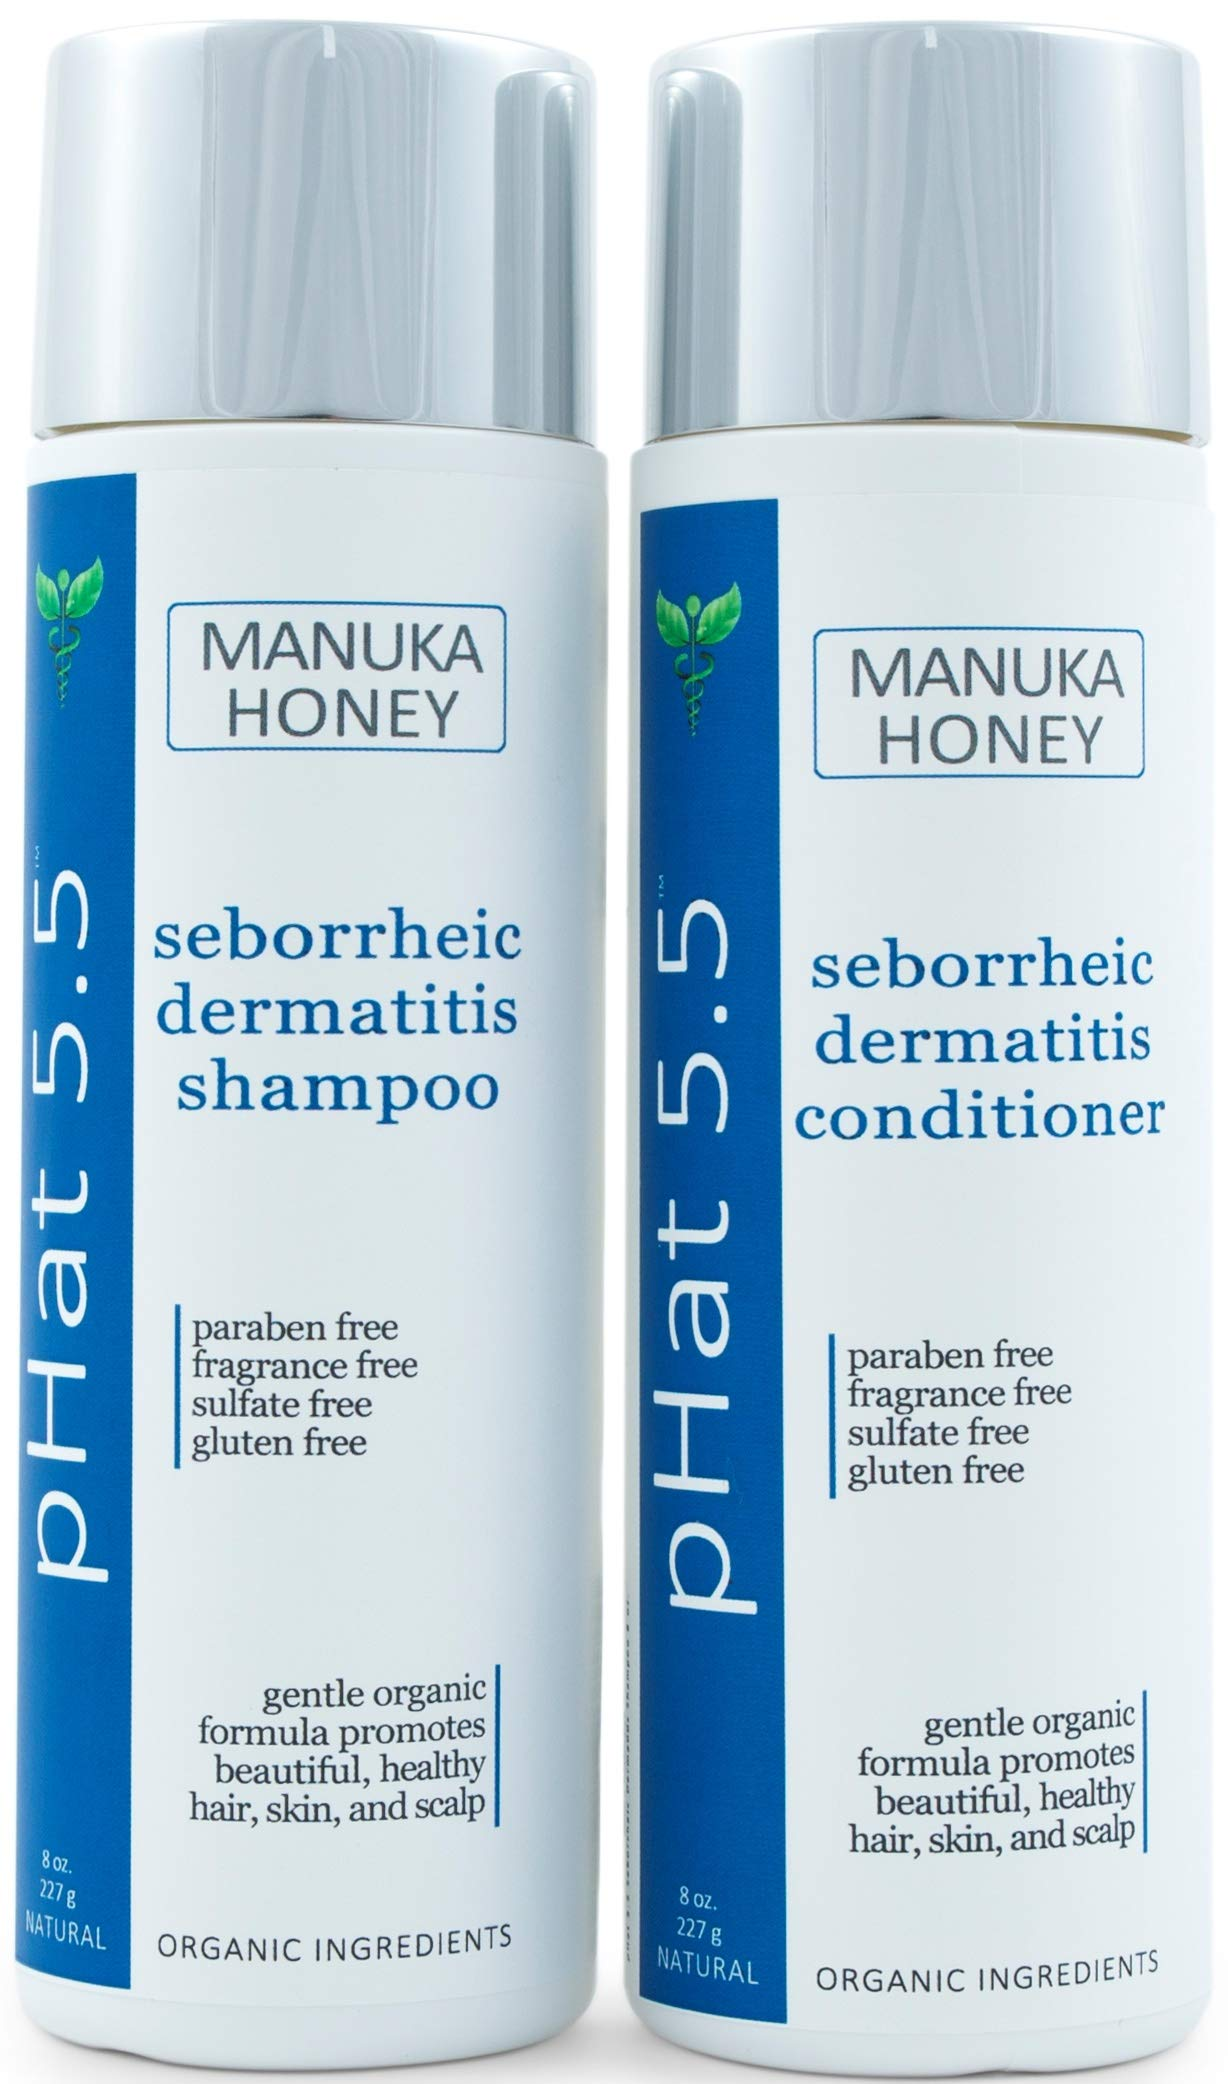 Sulfate Free Shampoo and Conditioner Set for Seborrheic Dermatitis Relief - Severe Dry & Itchy Scalp Treatment with Manuka Honey, Aloe Vera & Coconut Oil - Safe for Color Treated Hair (8 oz) by pHat 5.5